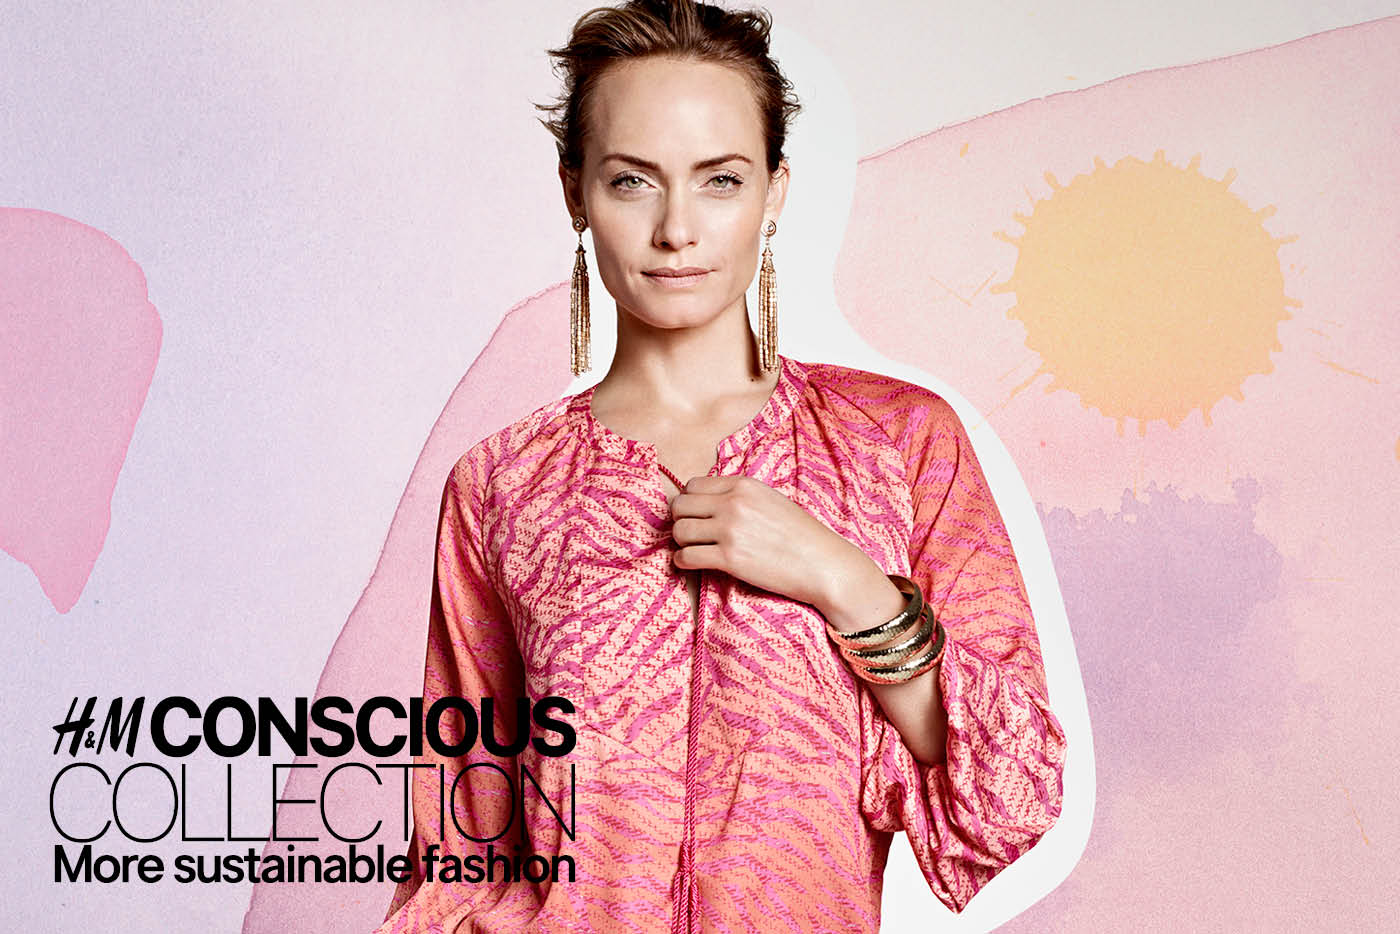 #H&M #consciouscollection #sustainablefashion #spring fashion